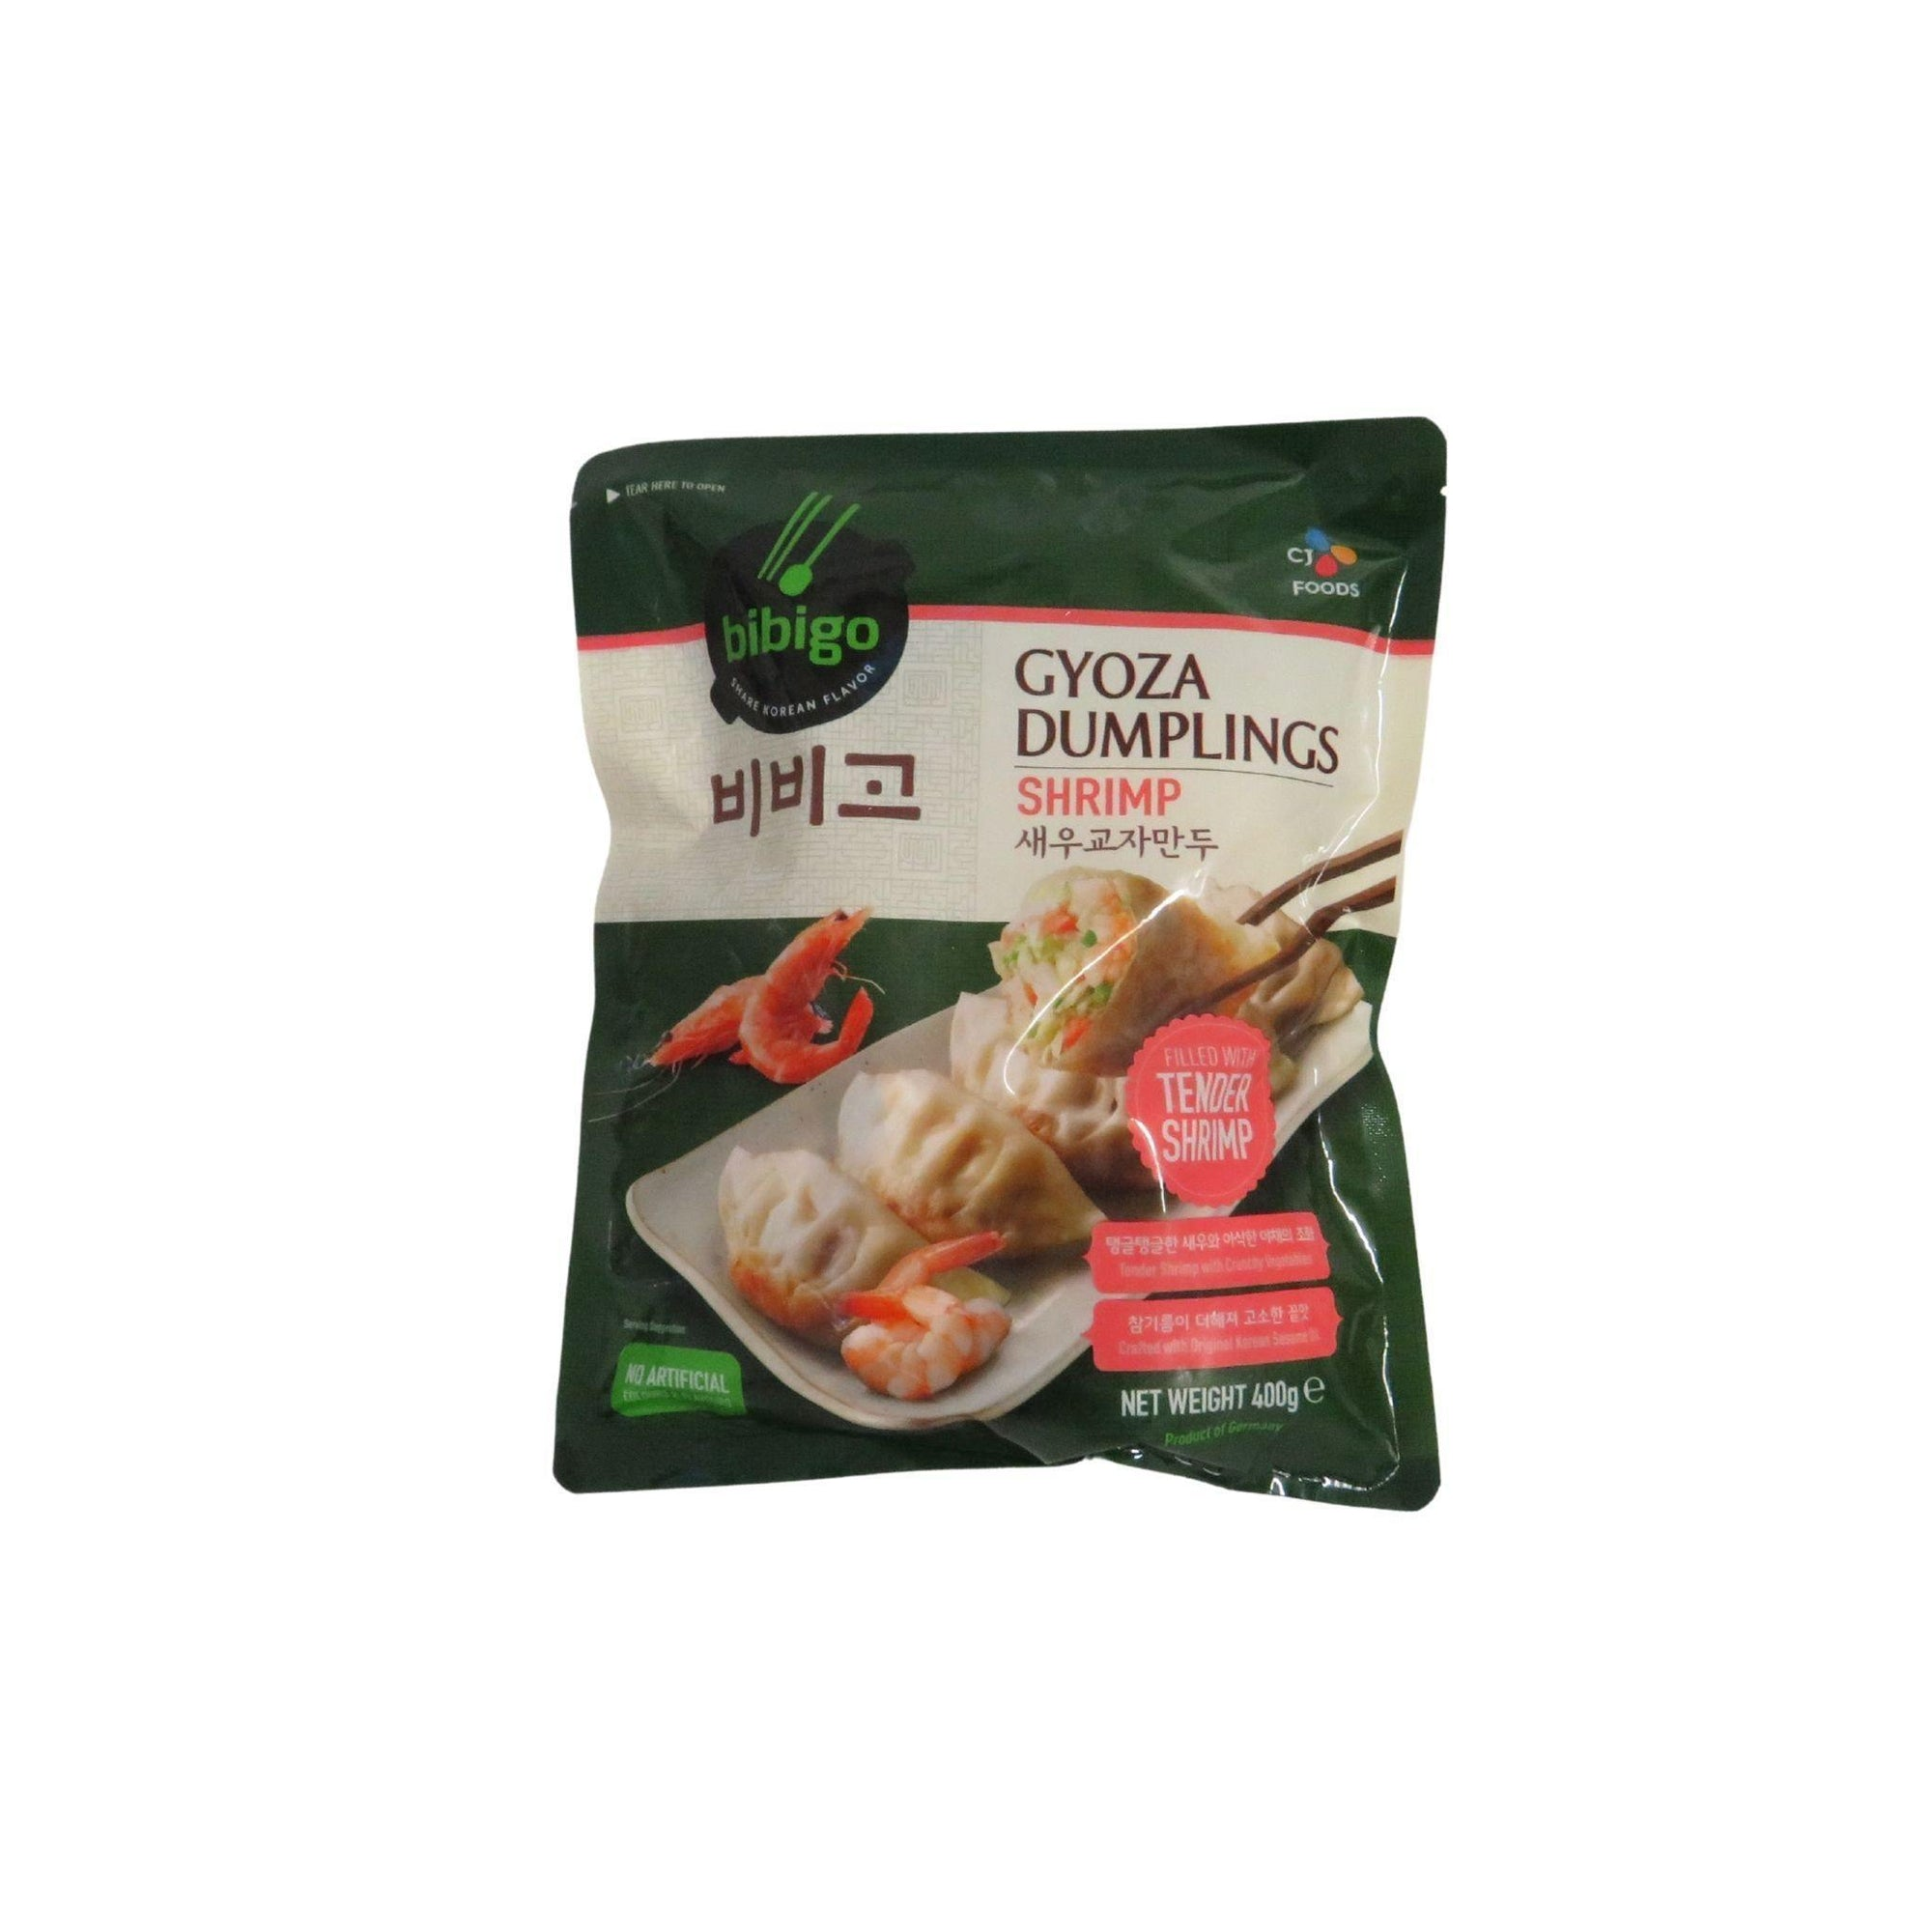 Bibigo Shrimp and Veg Gyoza Dumpling 400G - Asian Harvest